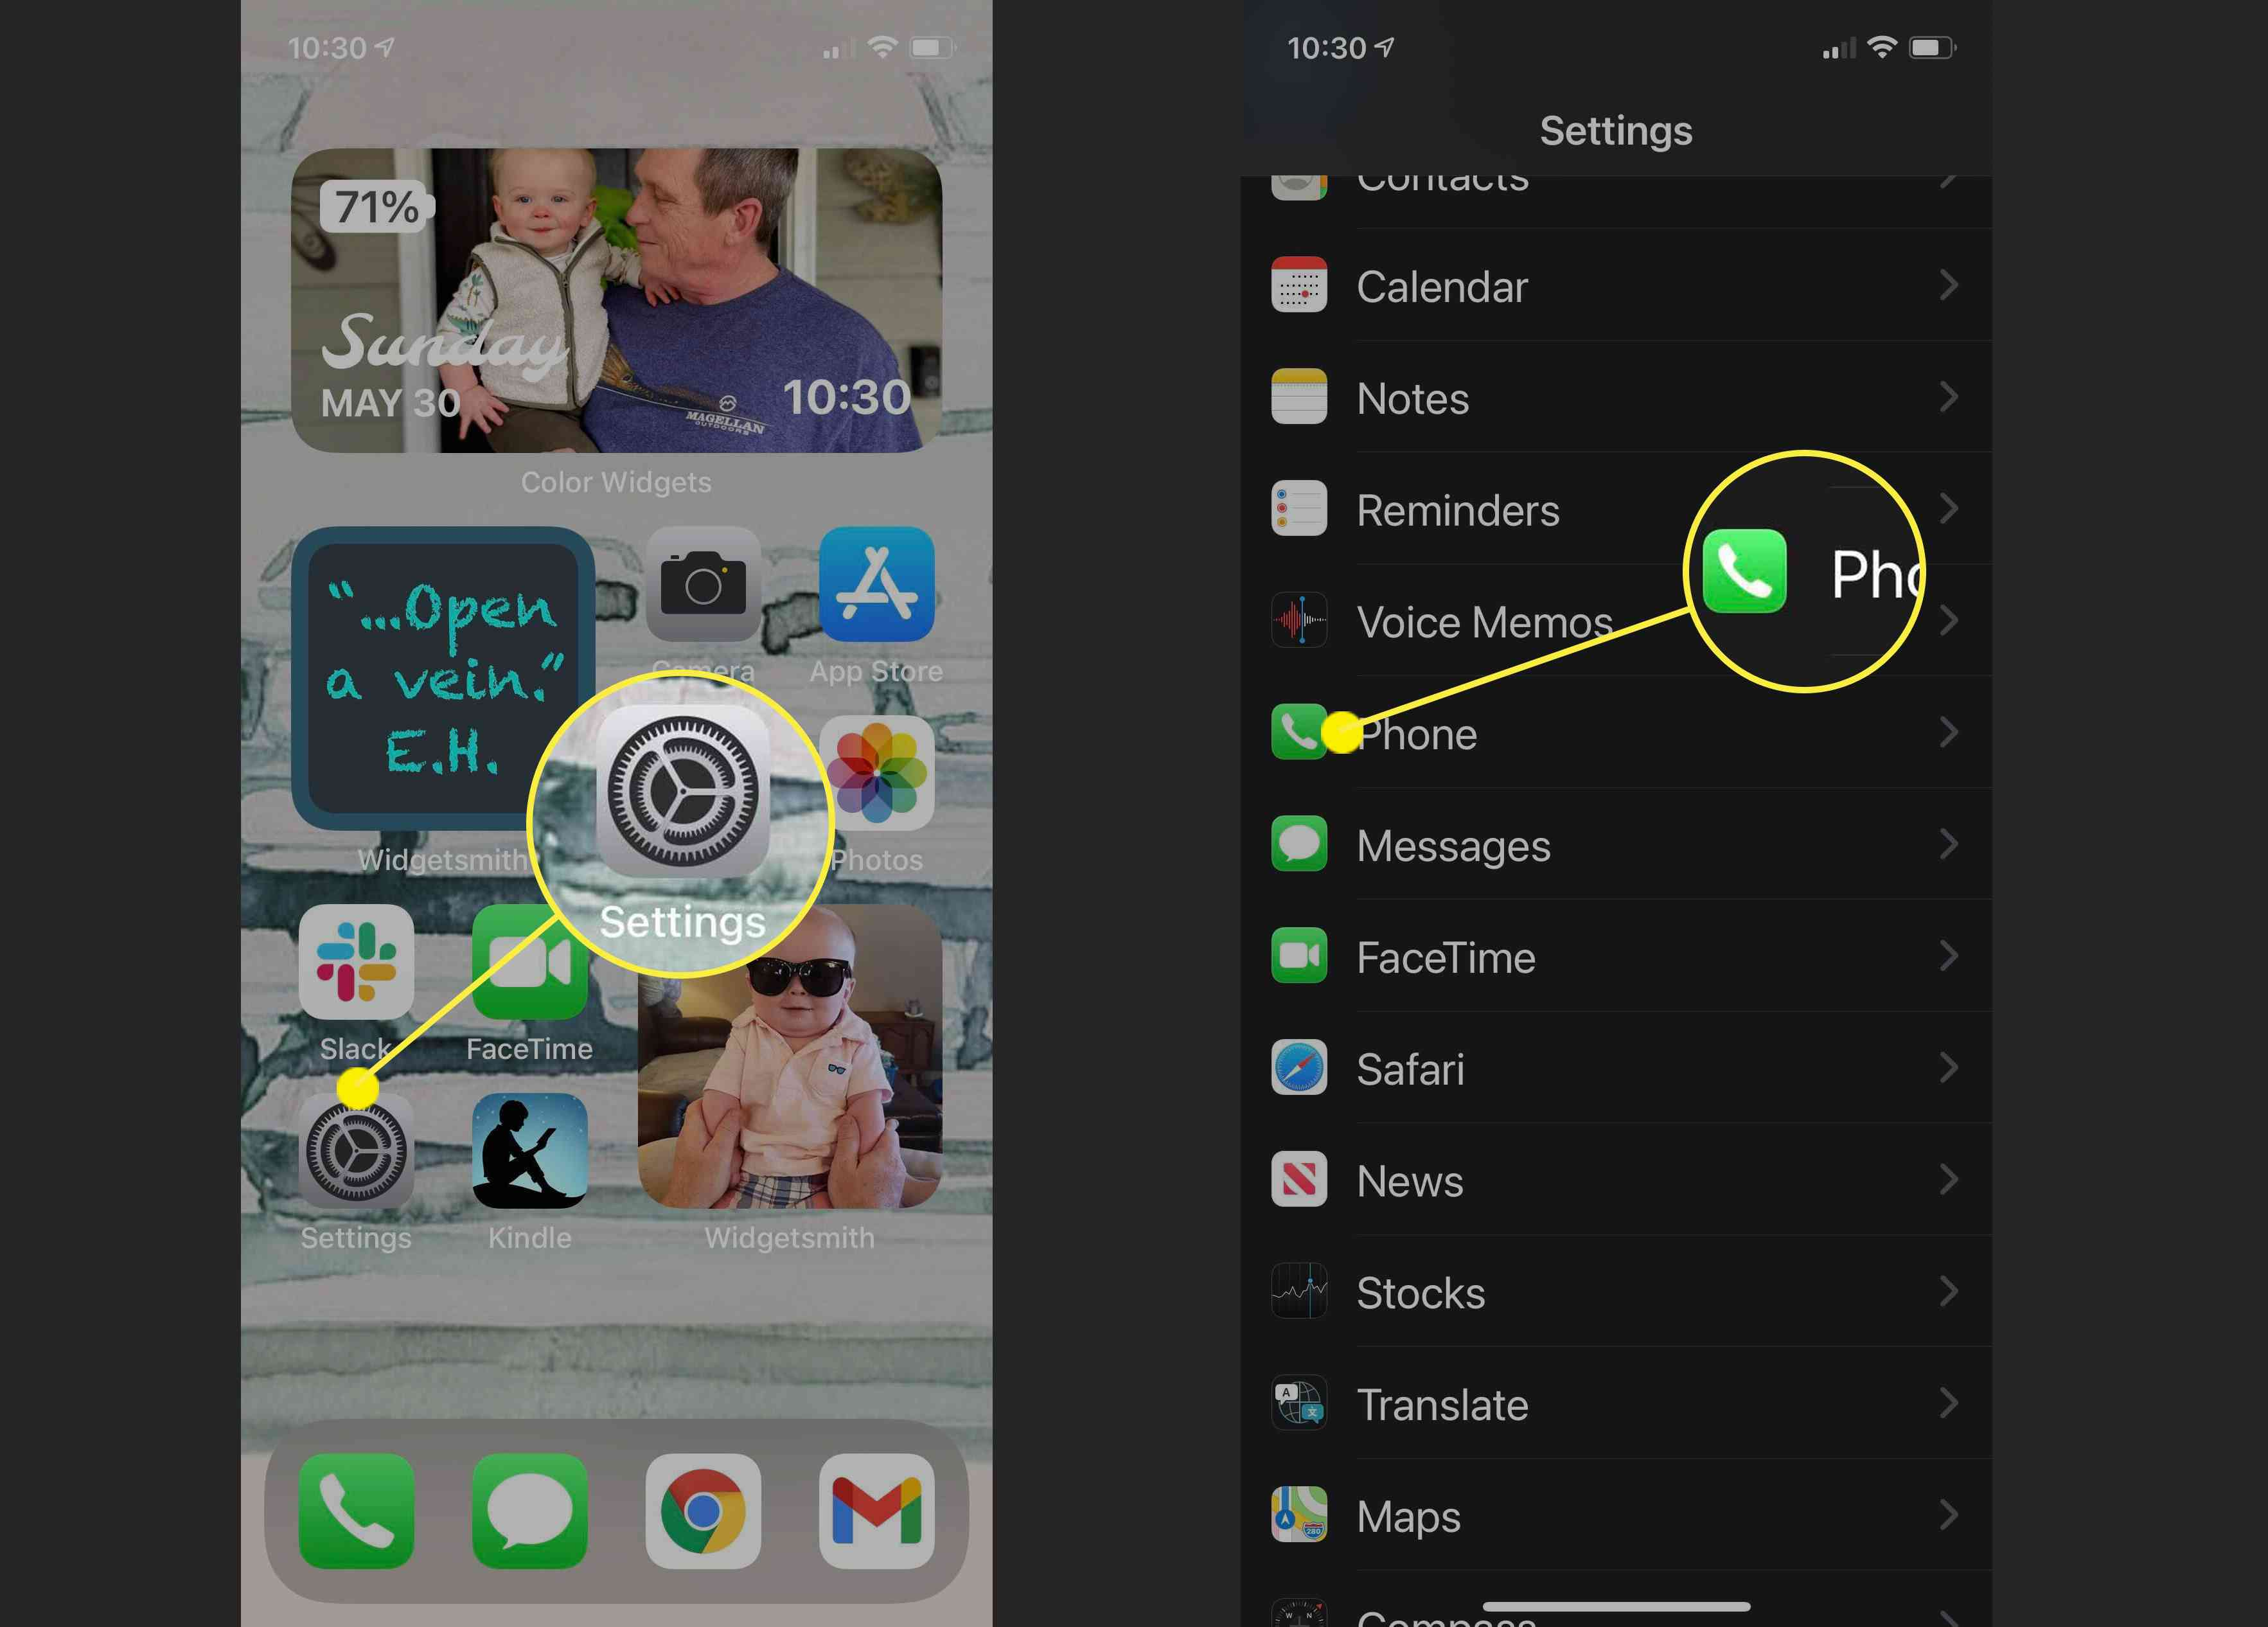 Screenshots showing how to get to Phone Settings on iPhone.